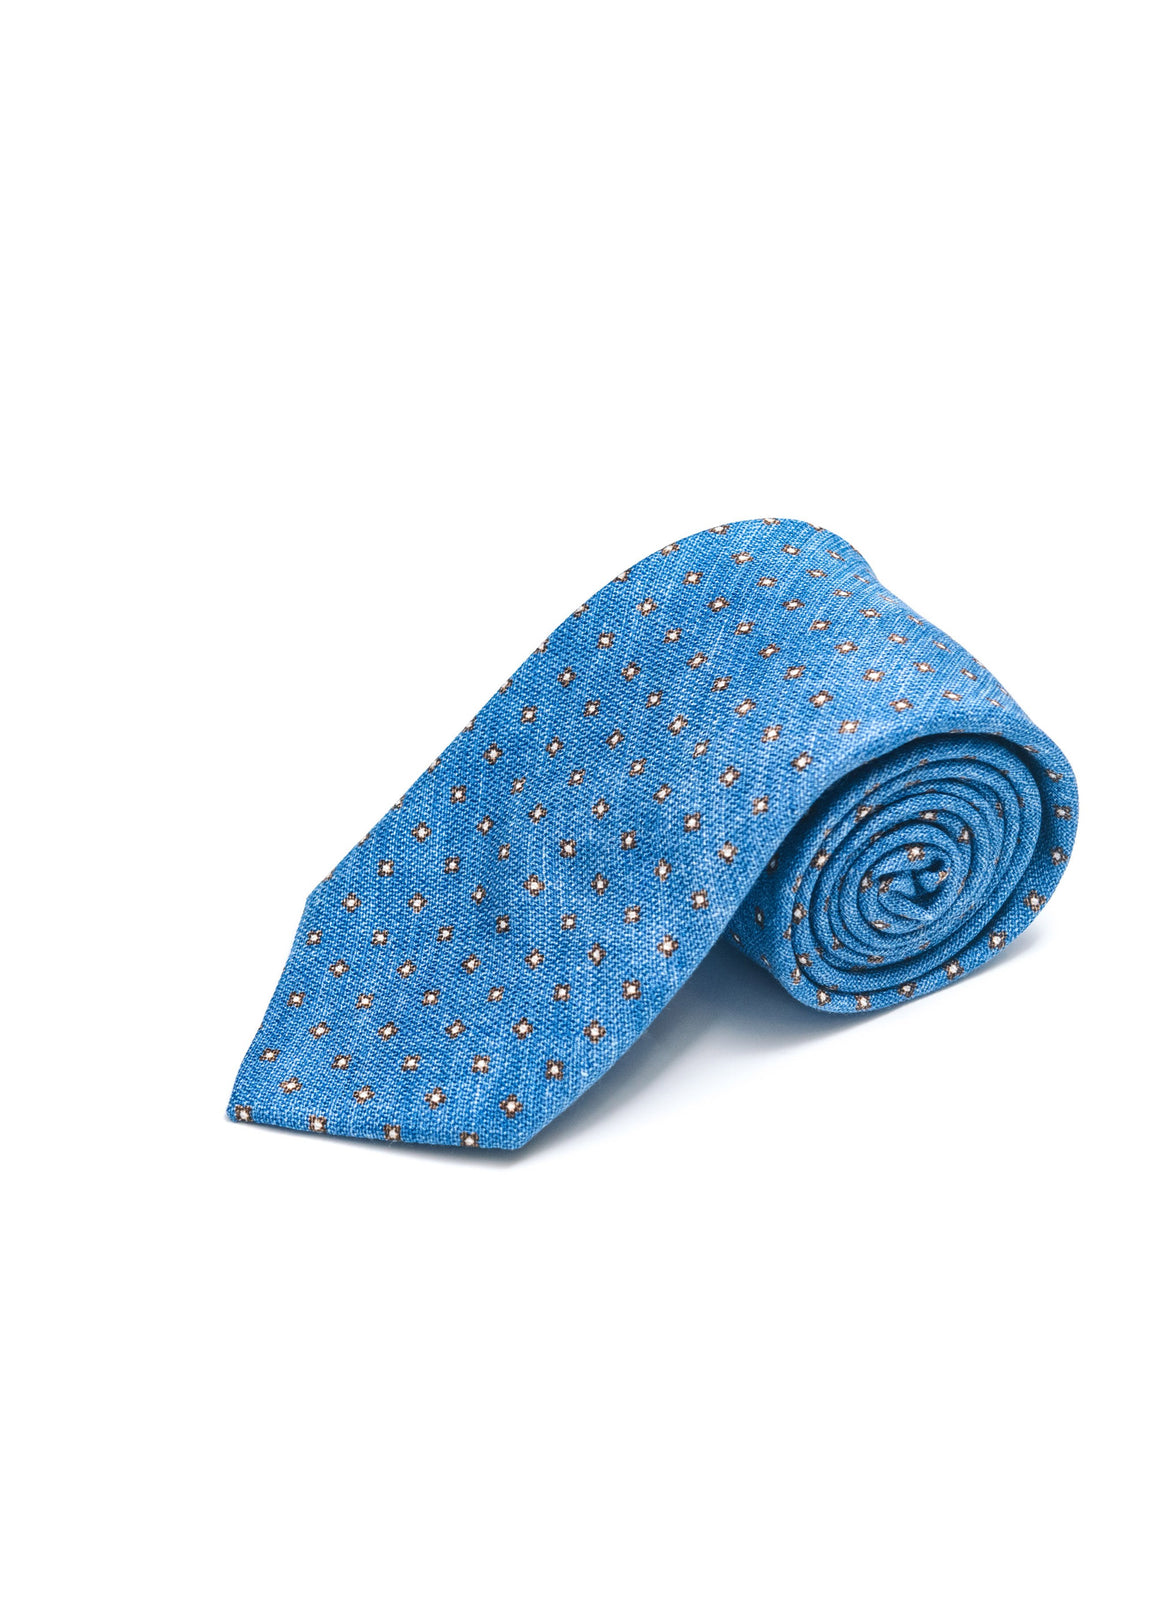 Edward Armah Silk Tie | Blue with Brown and Beige Mini Neat Print